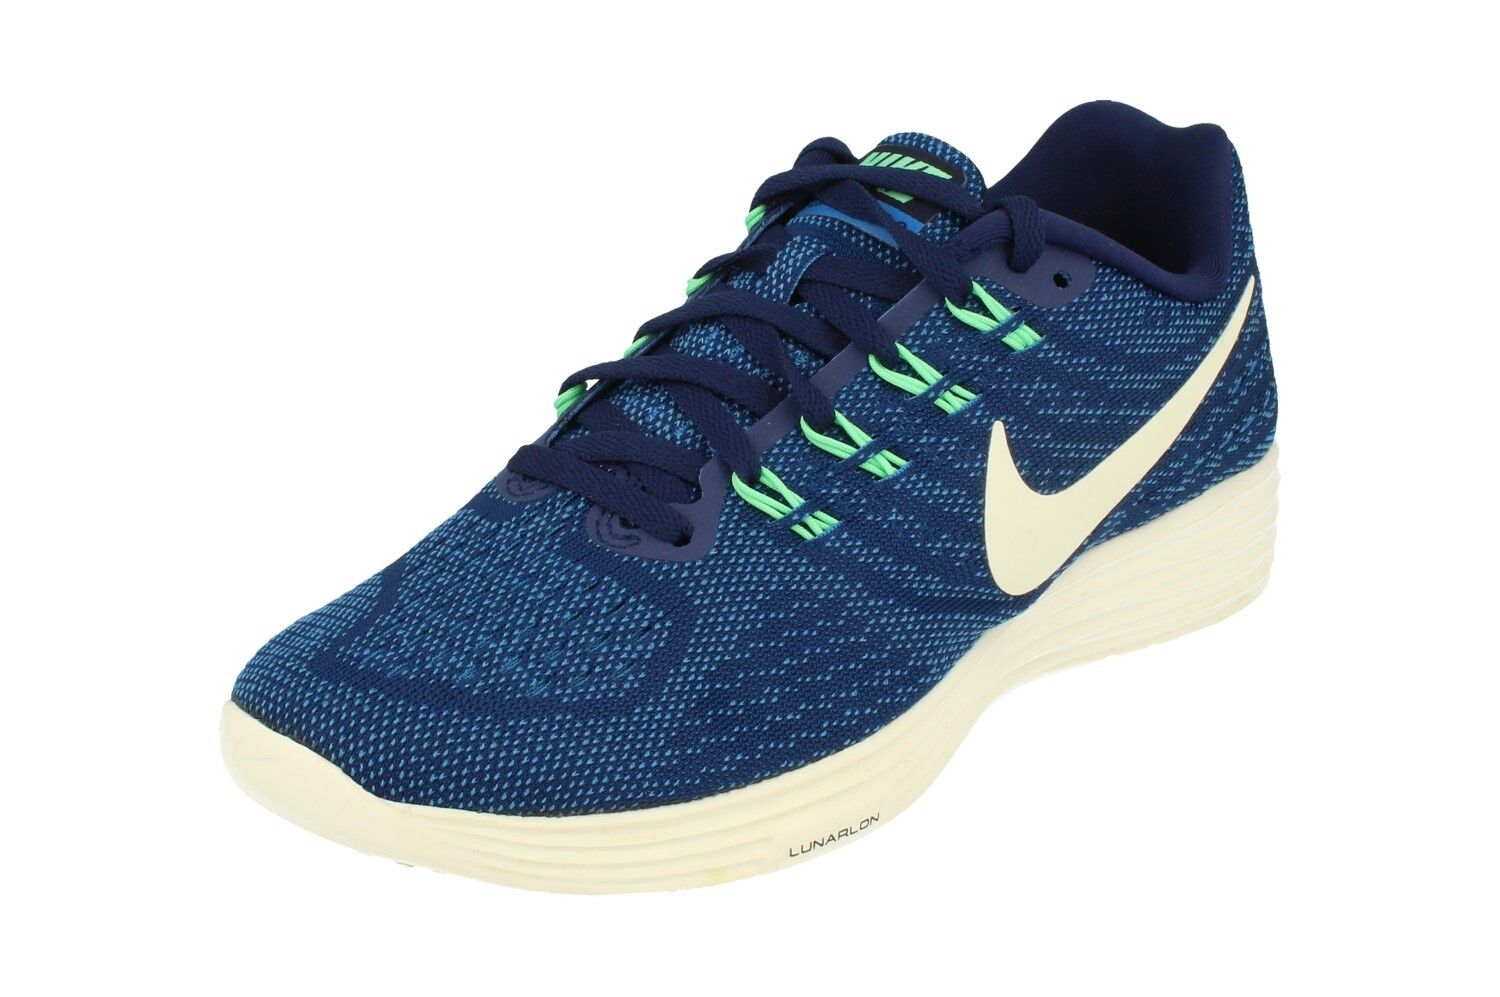 Nike Womens Lunartempo 2 Running Trainers 818098 Sneakers shoes 407